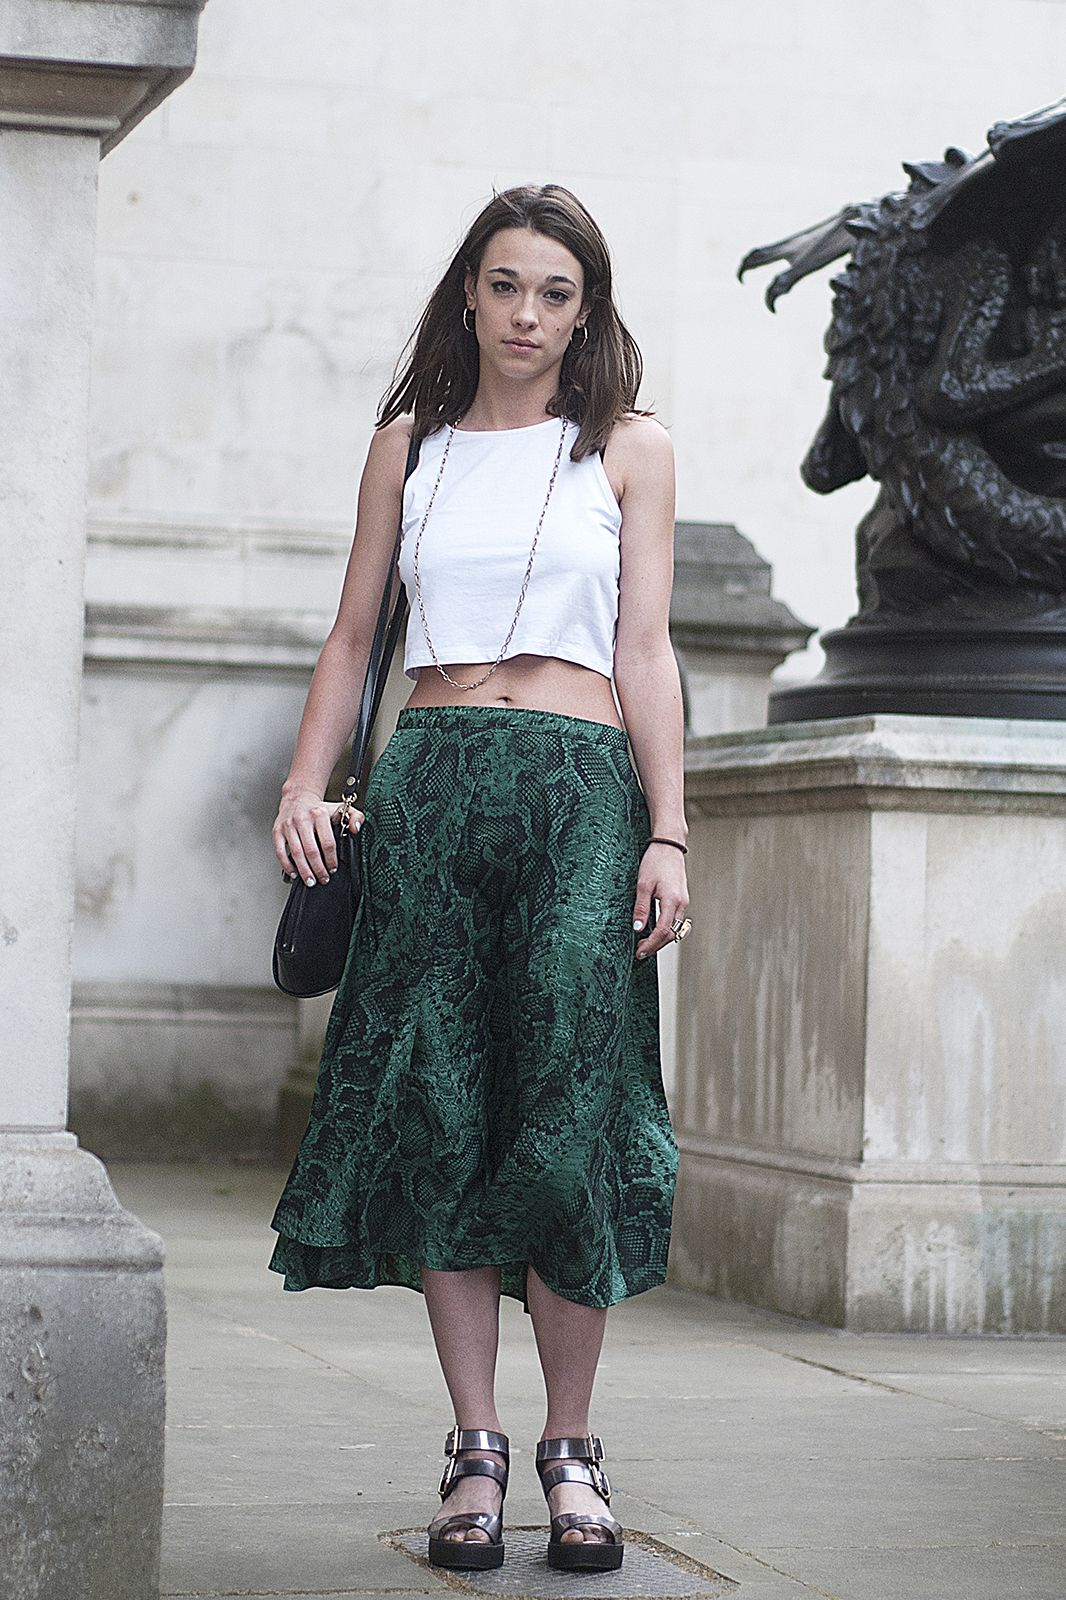 Tate britain best street style looks topshop student and bags